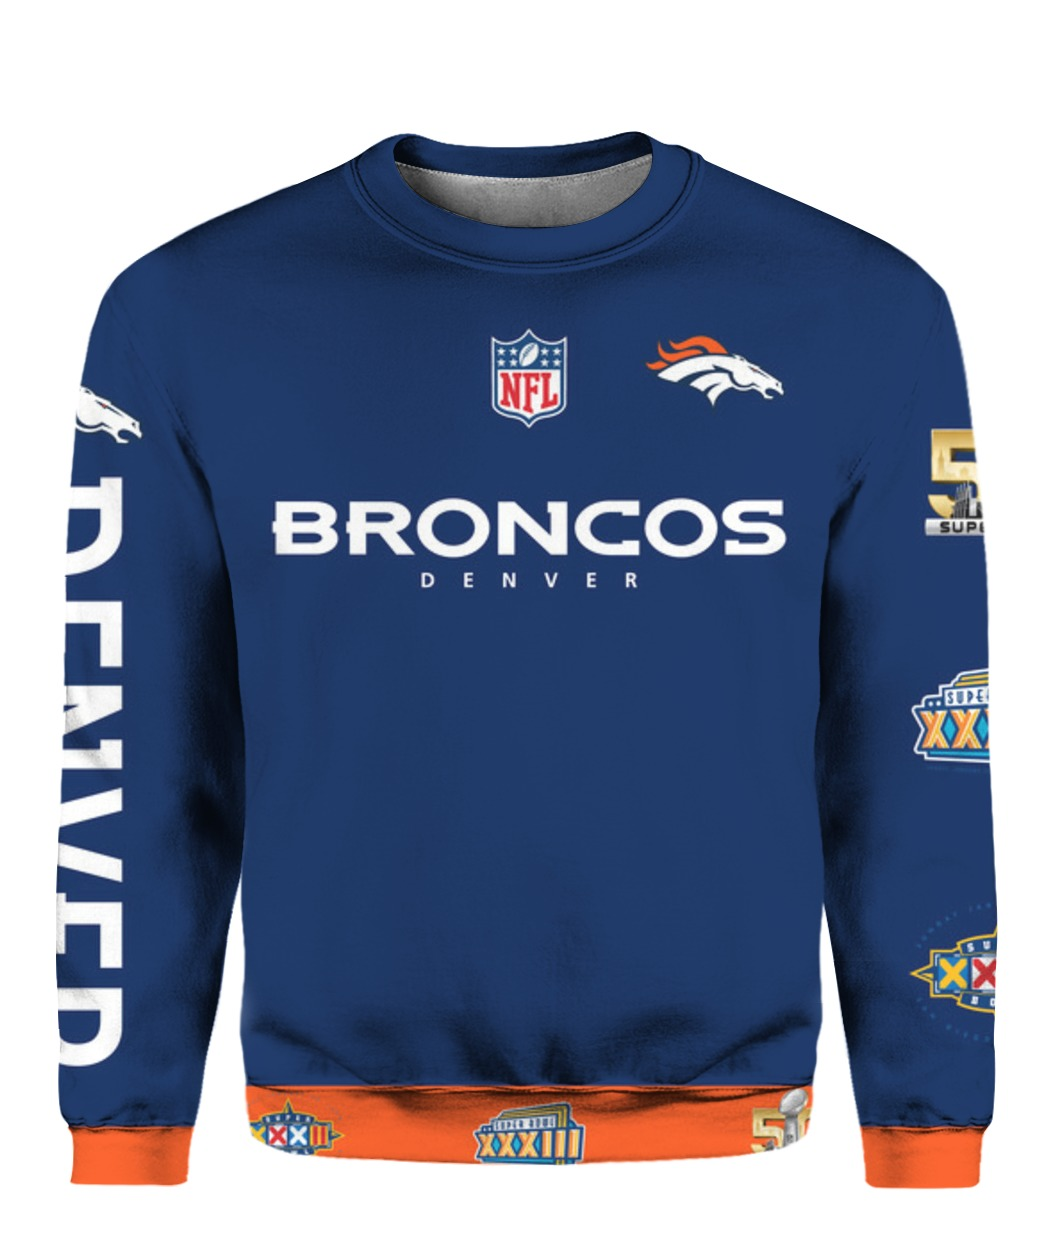 Stand for the flag kneel for the cross denver broncos all over print sweatshirt